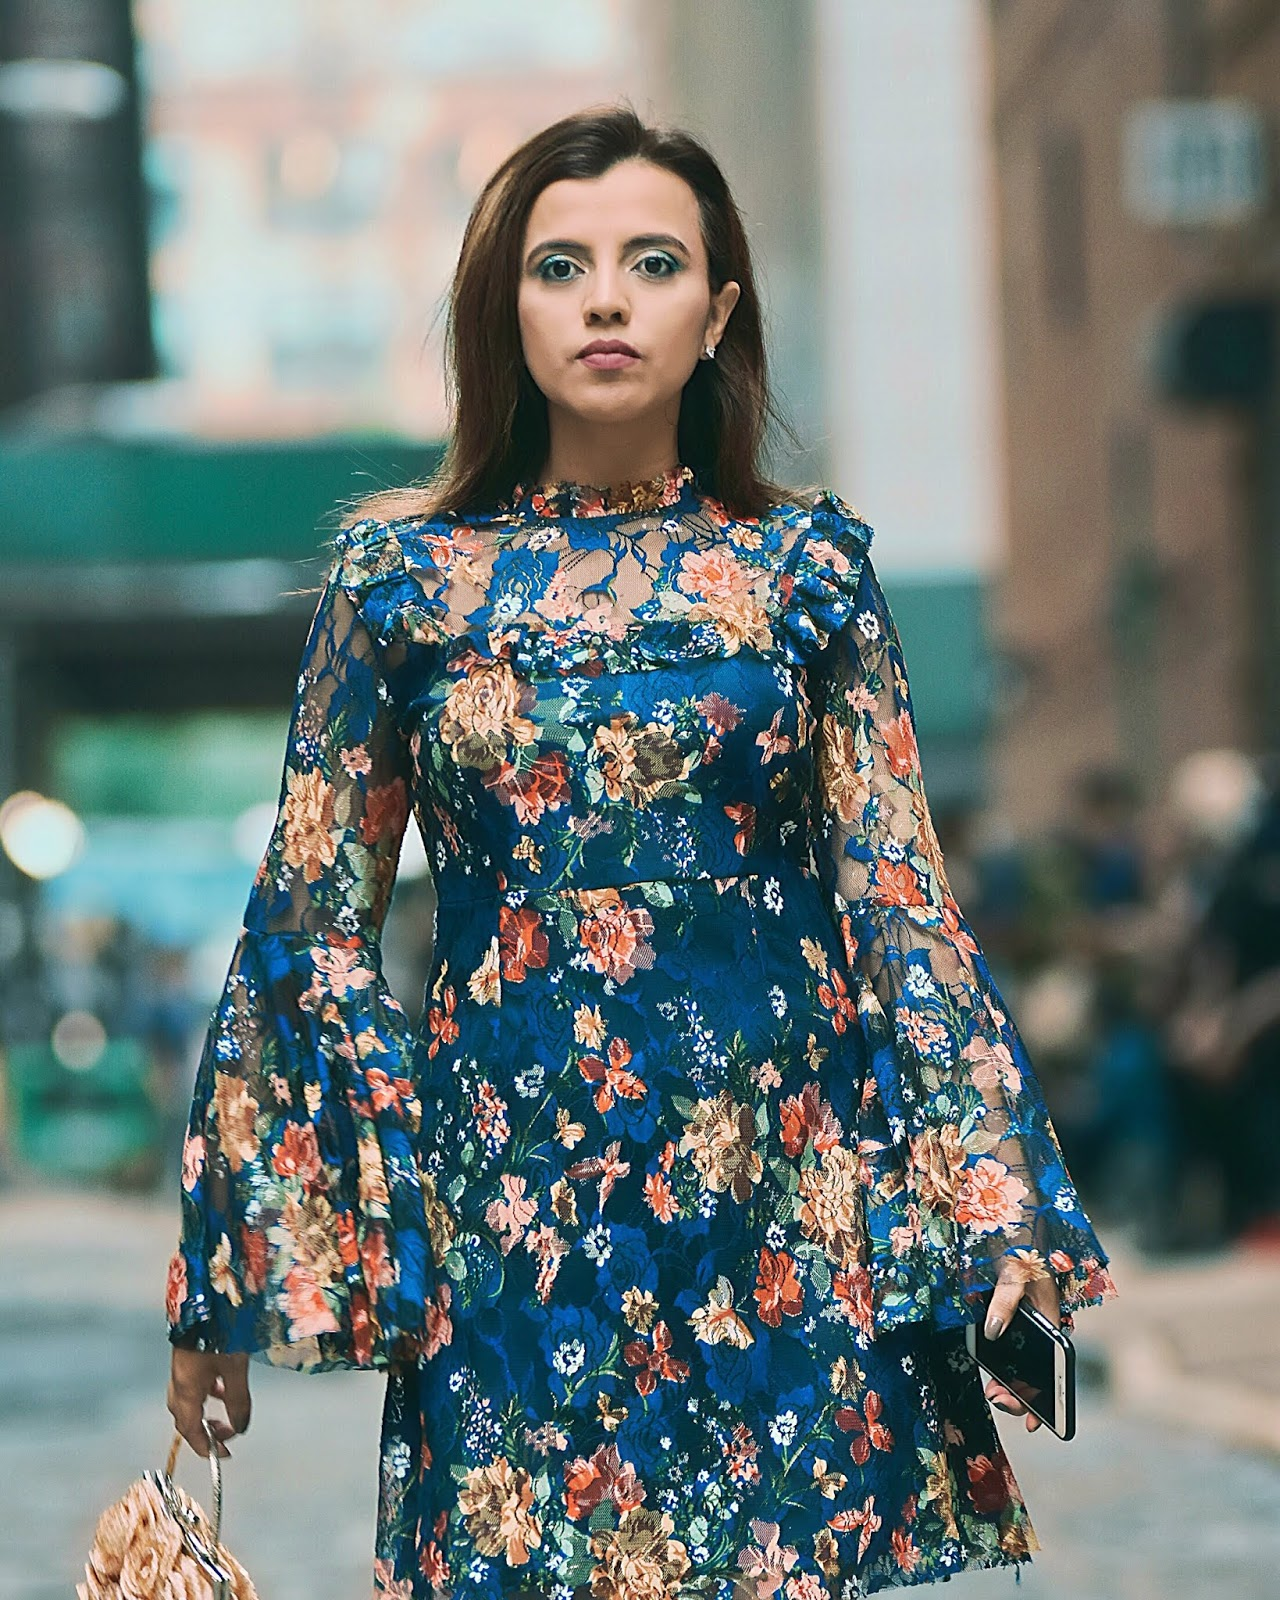 Dan Liu-nyfw-theshows-mariestilo-lookoftheday-fashionblogger-print dress-